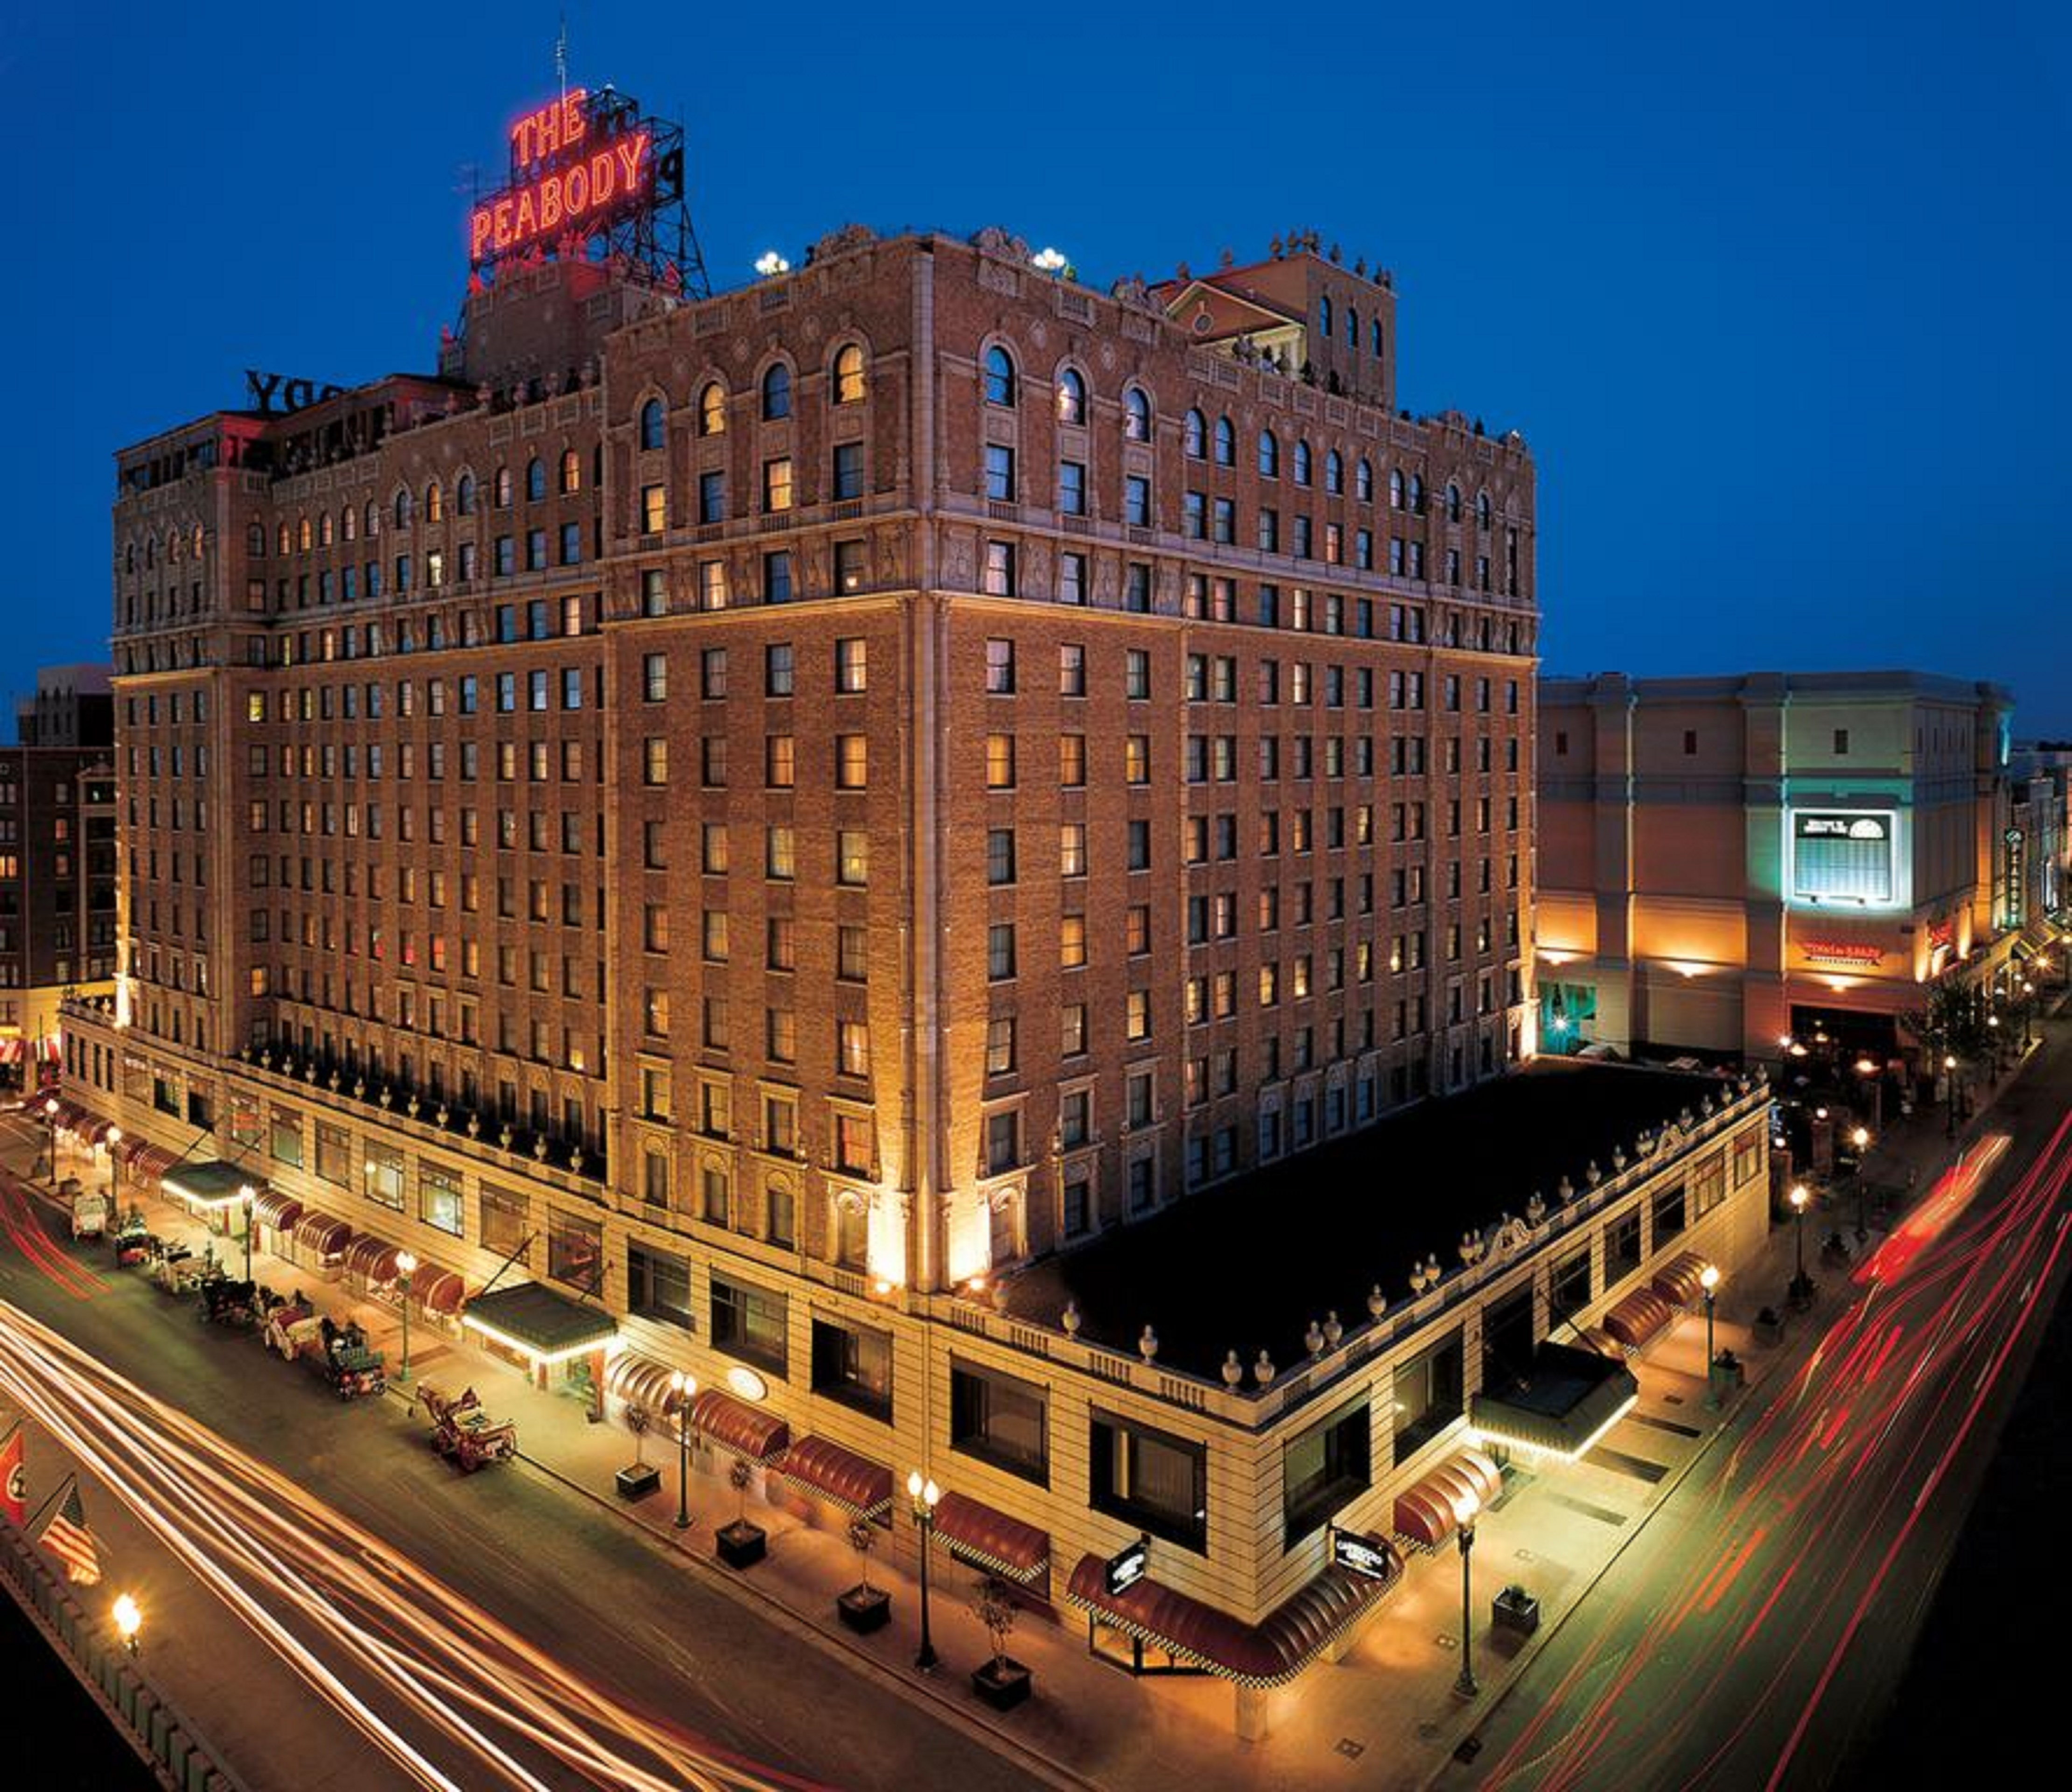 The Peabody Memphis, Shelby